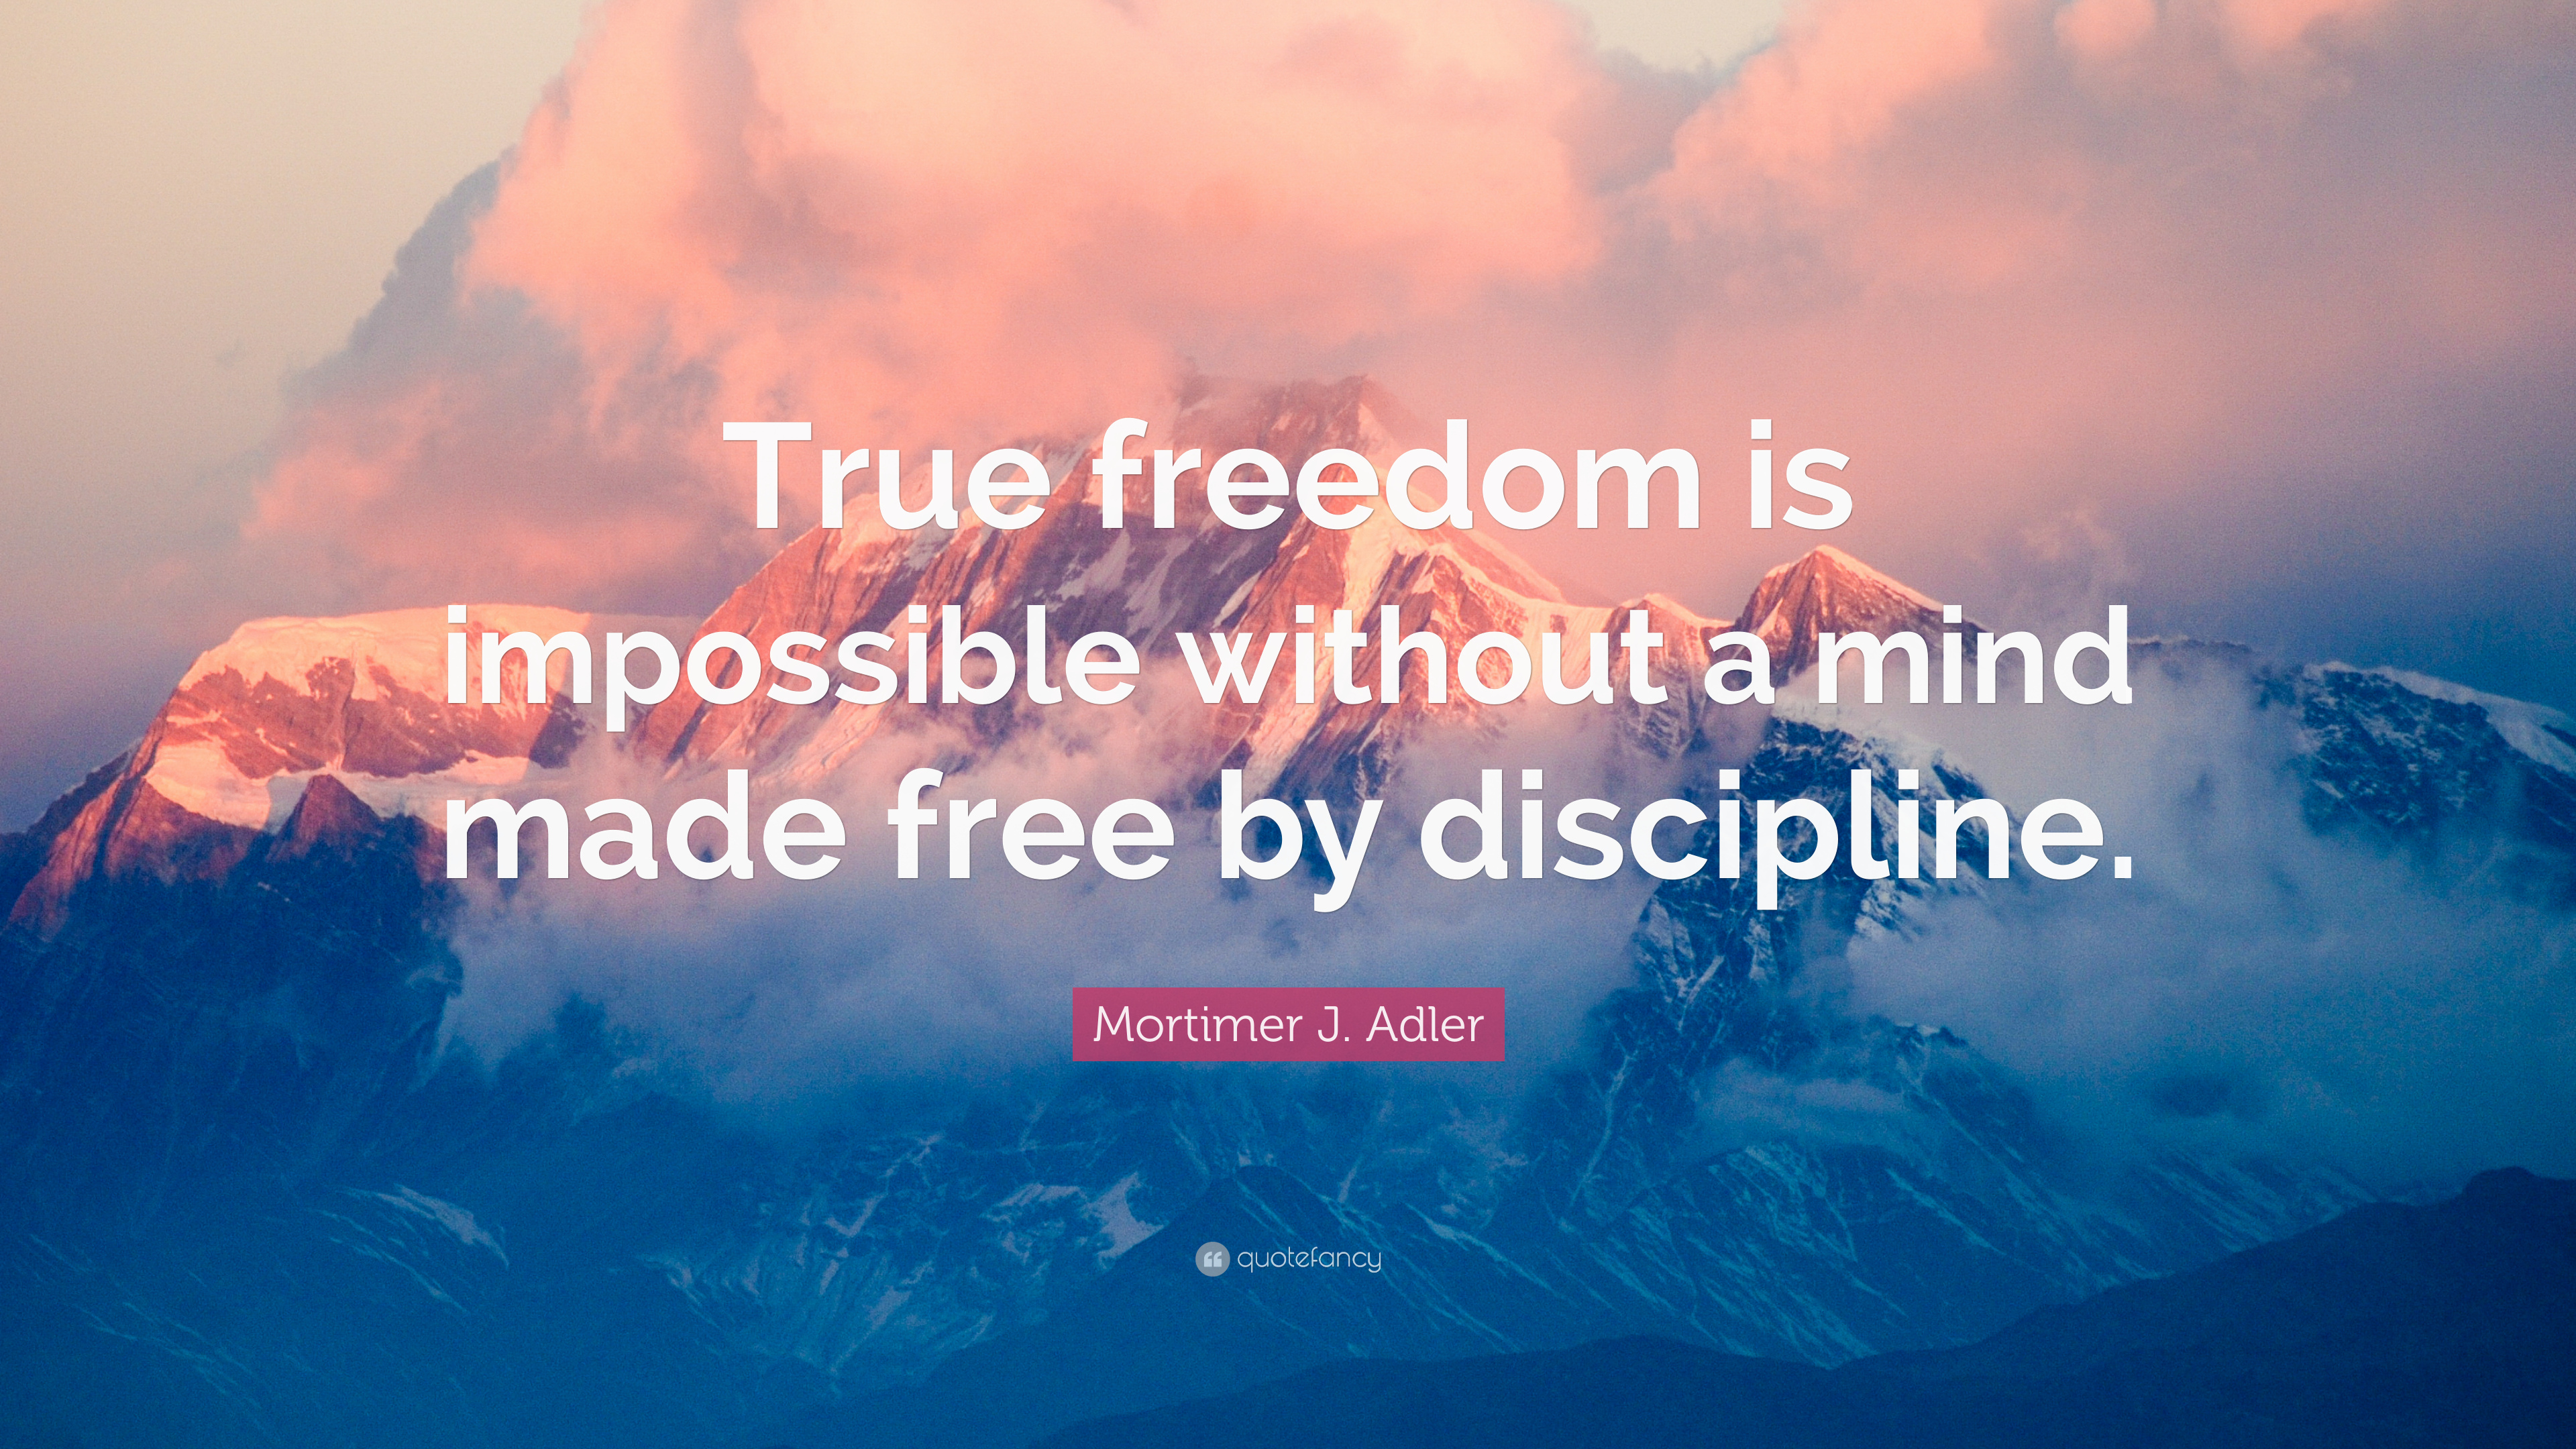 Essay on true liberty is impossible without self discipline